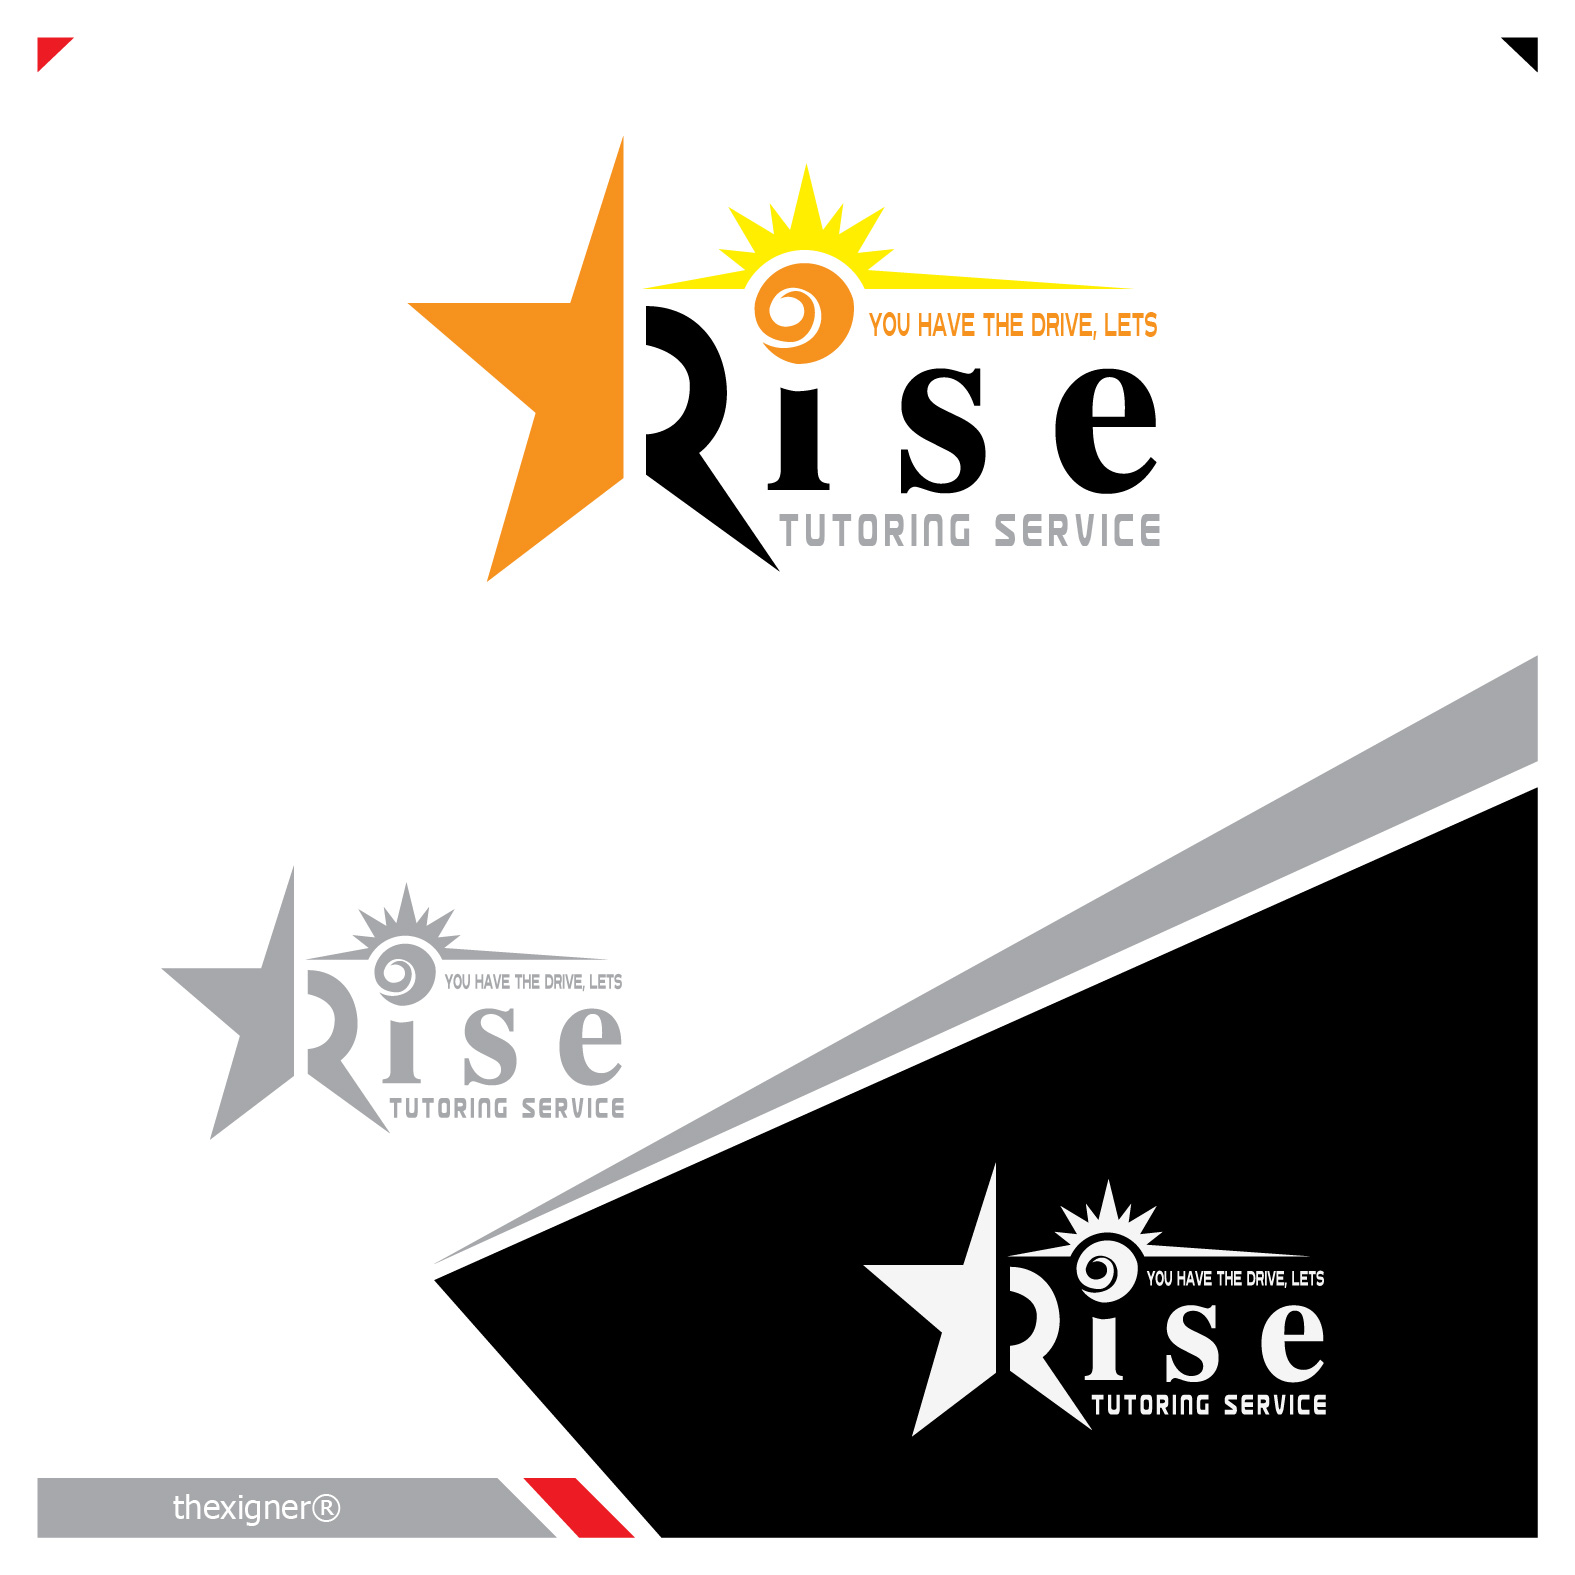 Logo Design by lagalag - Entry No. 90 in the Logo Design Contest Imaginative Logo Design for Rise Tutoring Service.